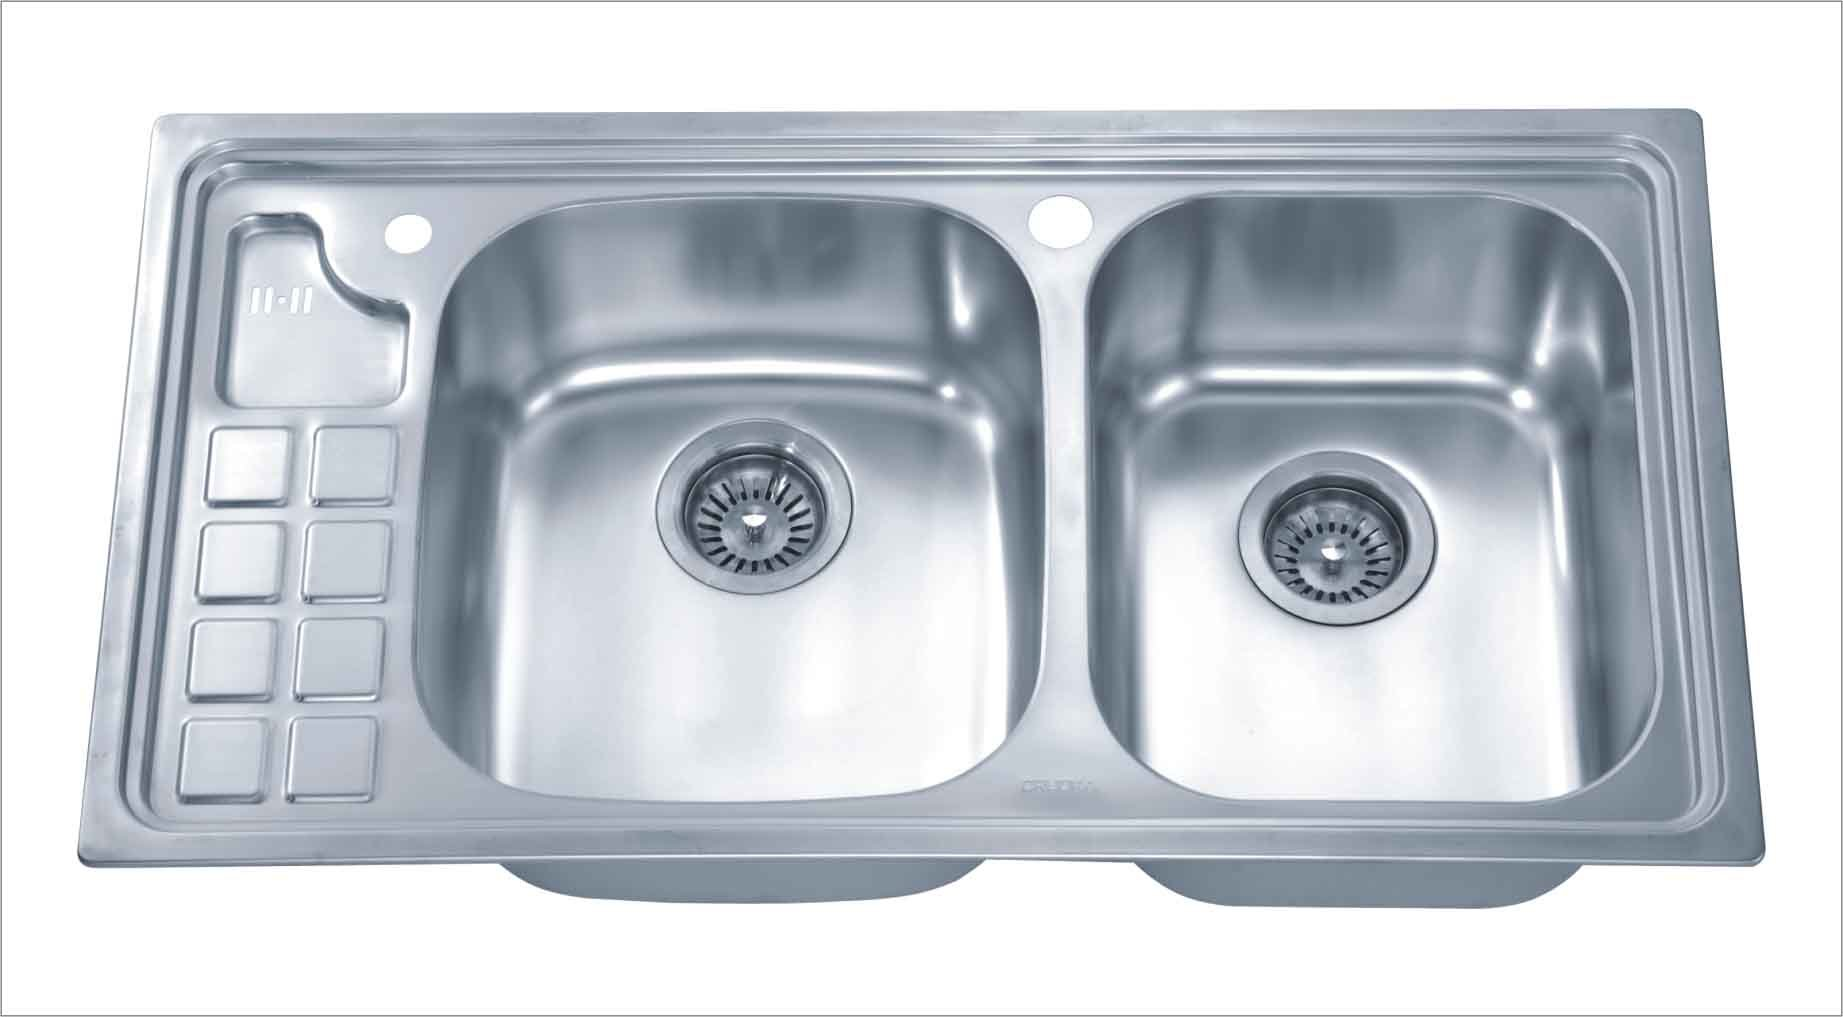 Stainless Steel Kitchen Sinks : ... Steel Kitchen Sink (2873) - China Kitchen Sink, Stainless Steel Sink